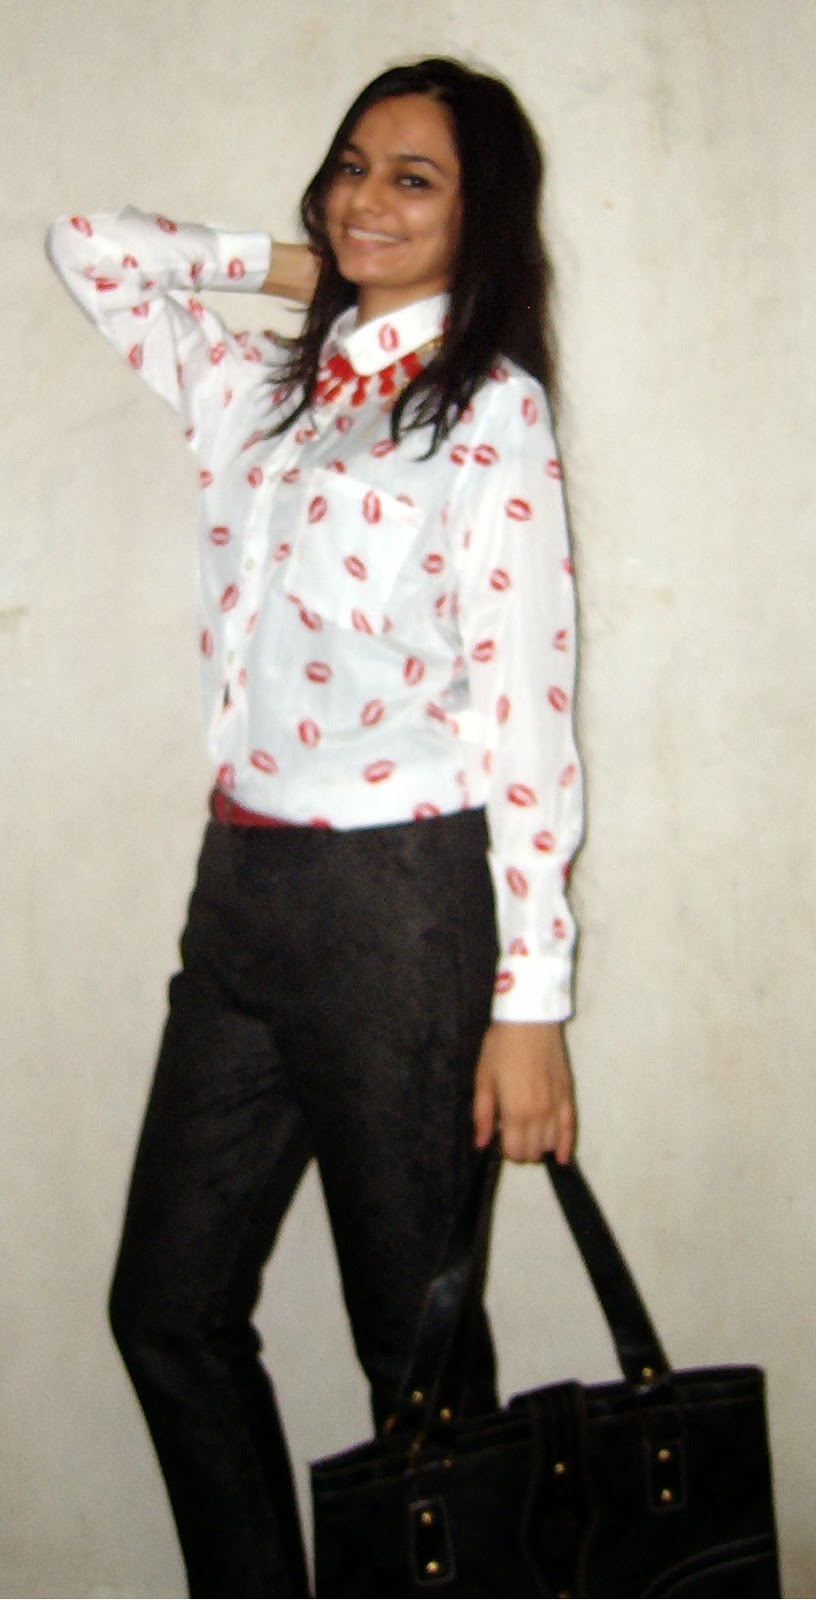 indian fashion blogger, mumbai fashion blogger, kiss, lipstick print, statement shirts